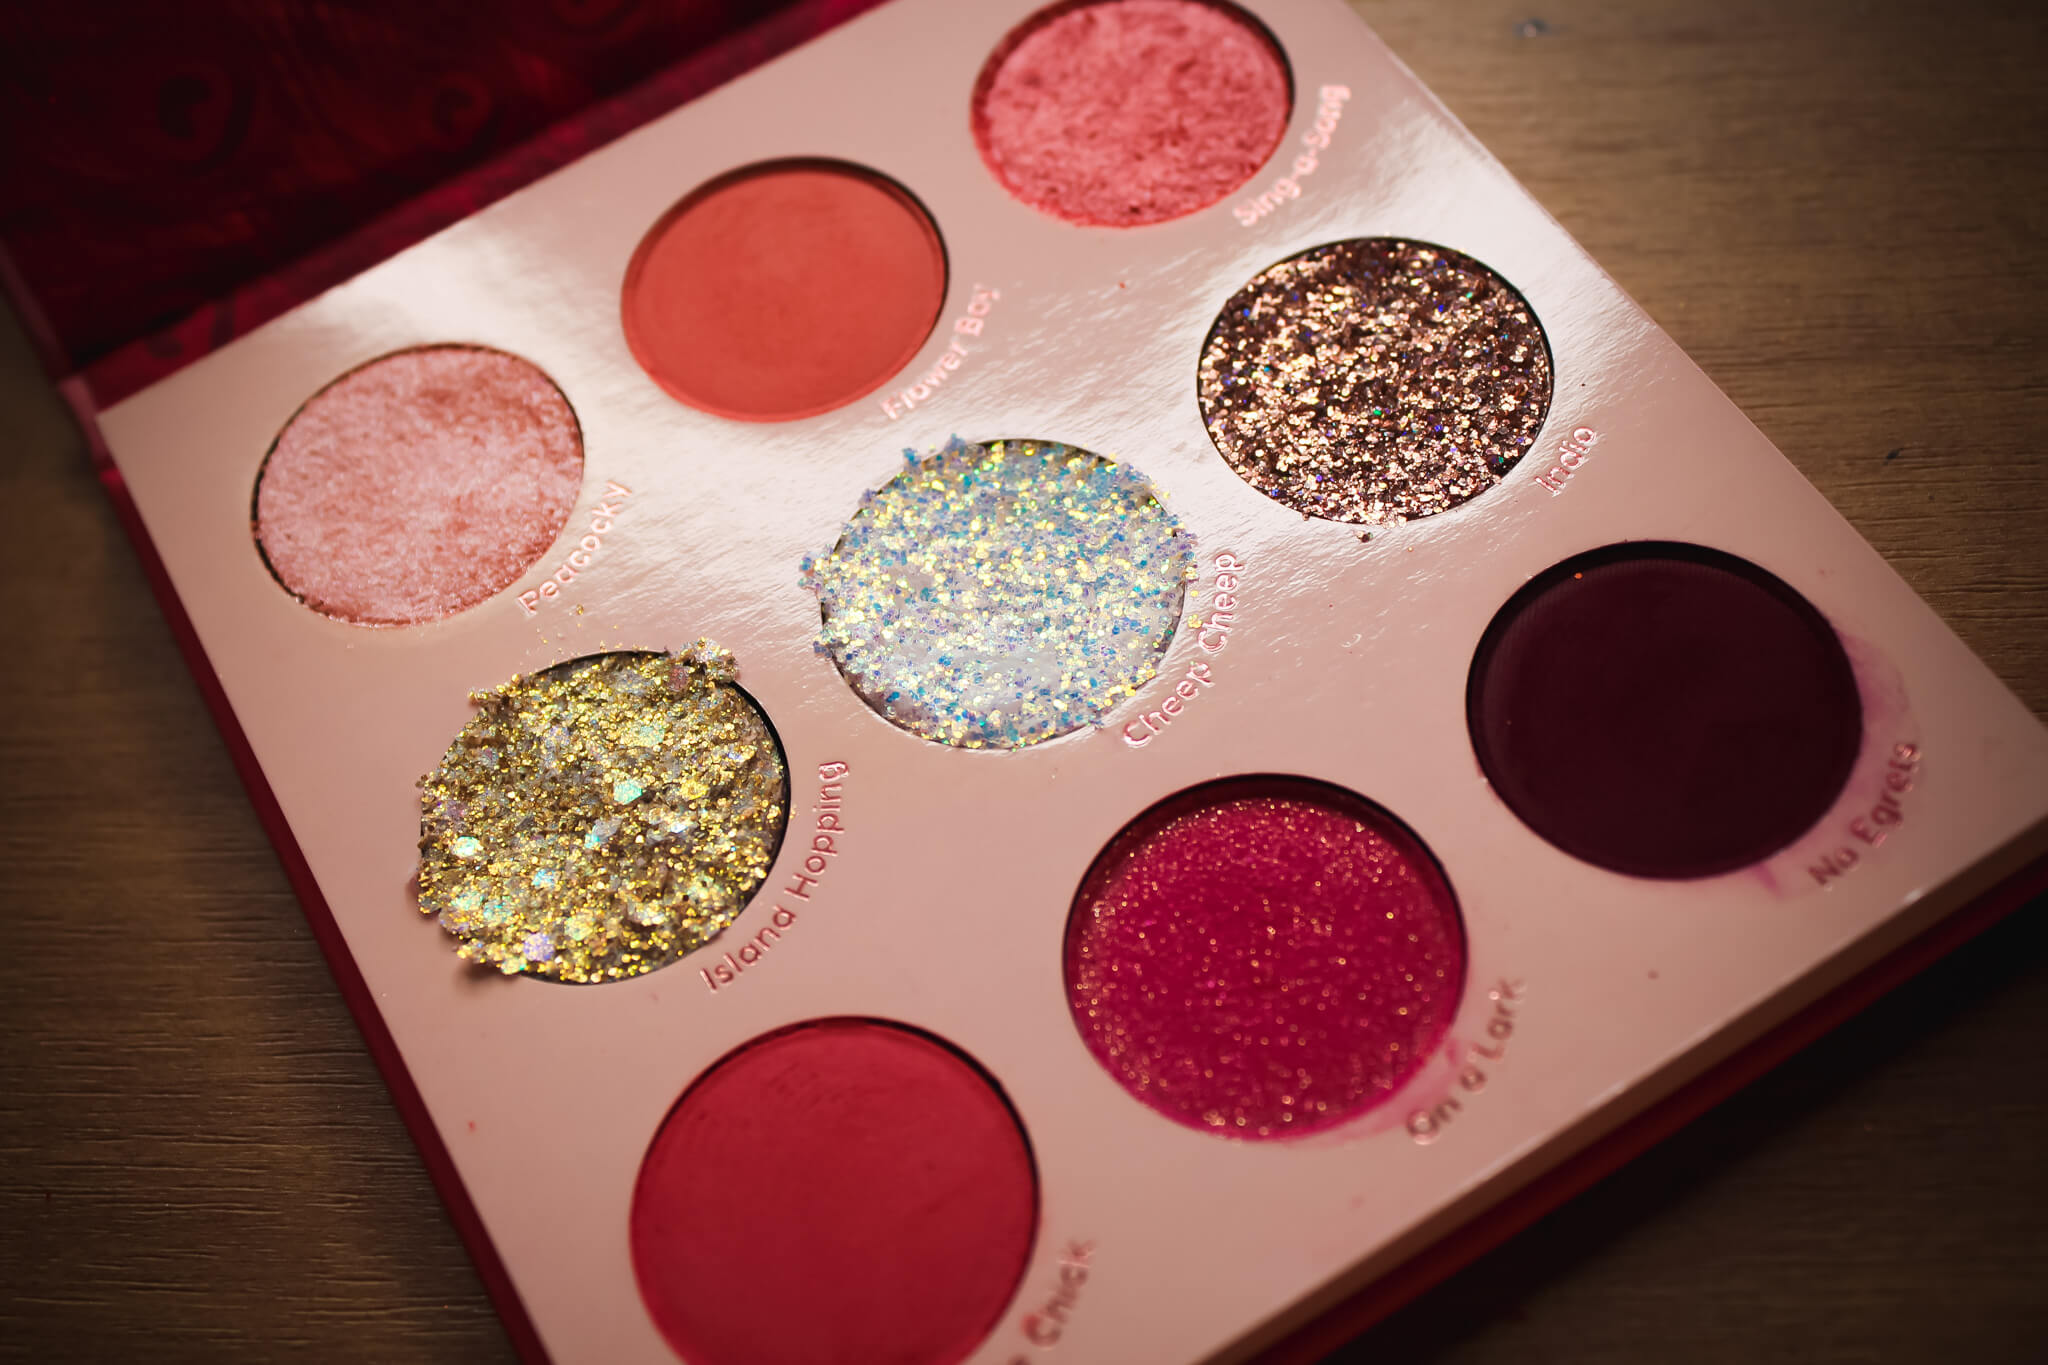 Birds Of Paradise Shadow Palette by Colourpop #21